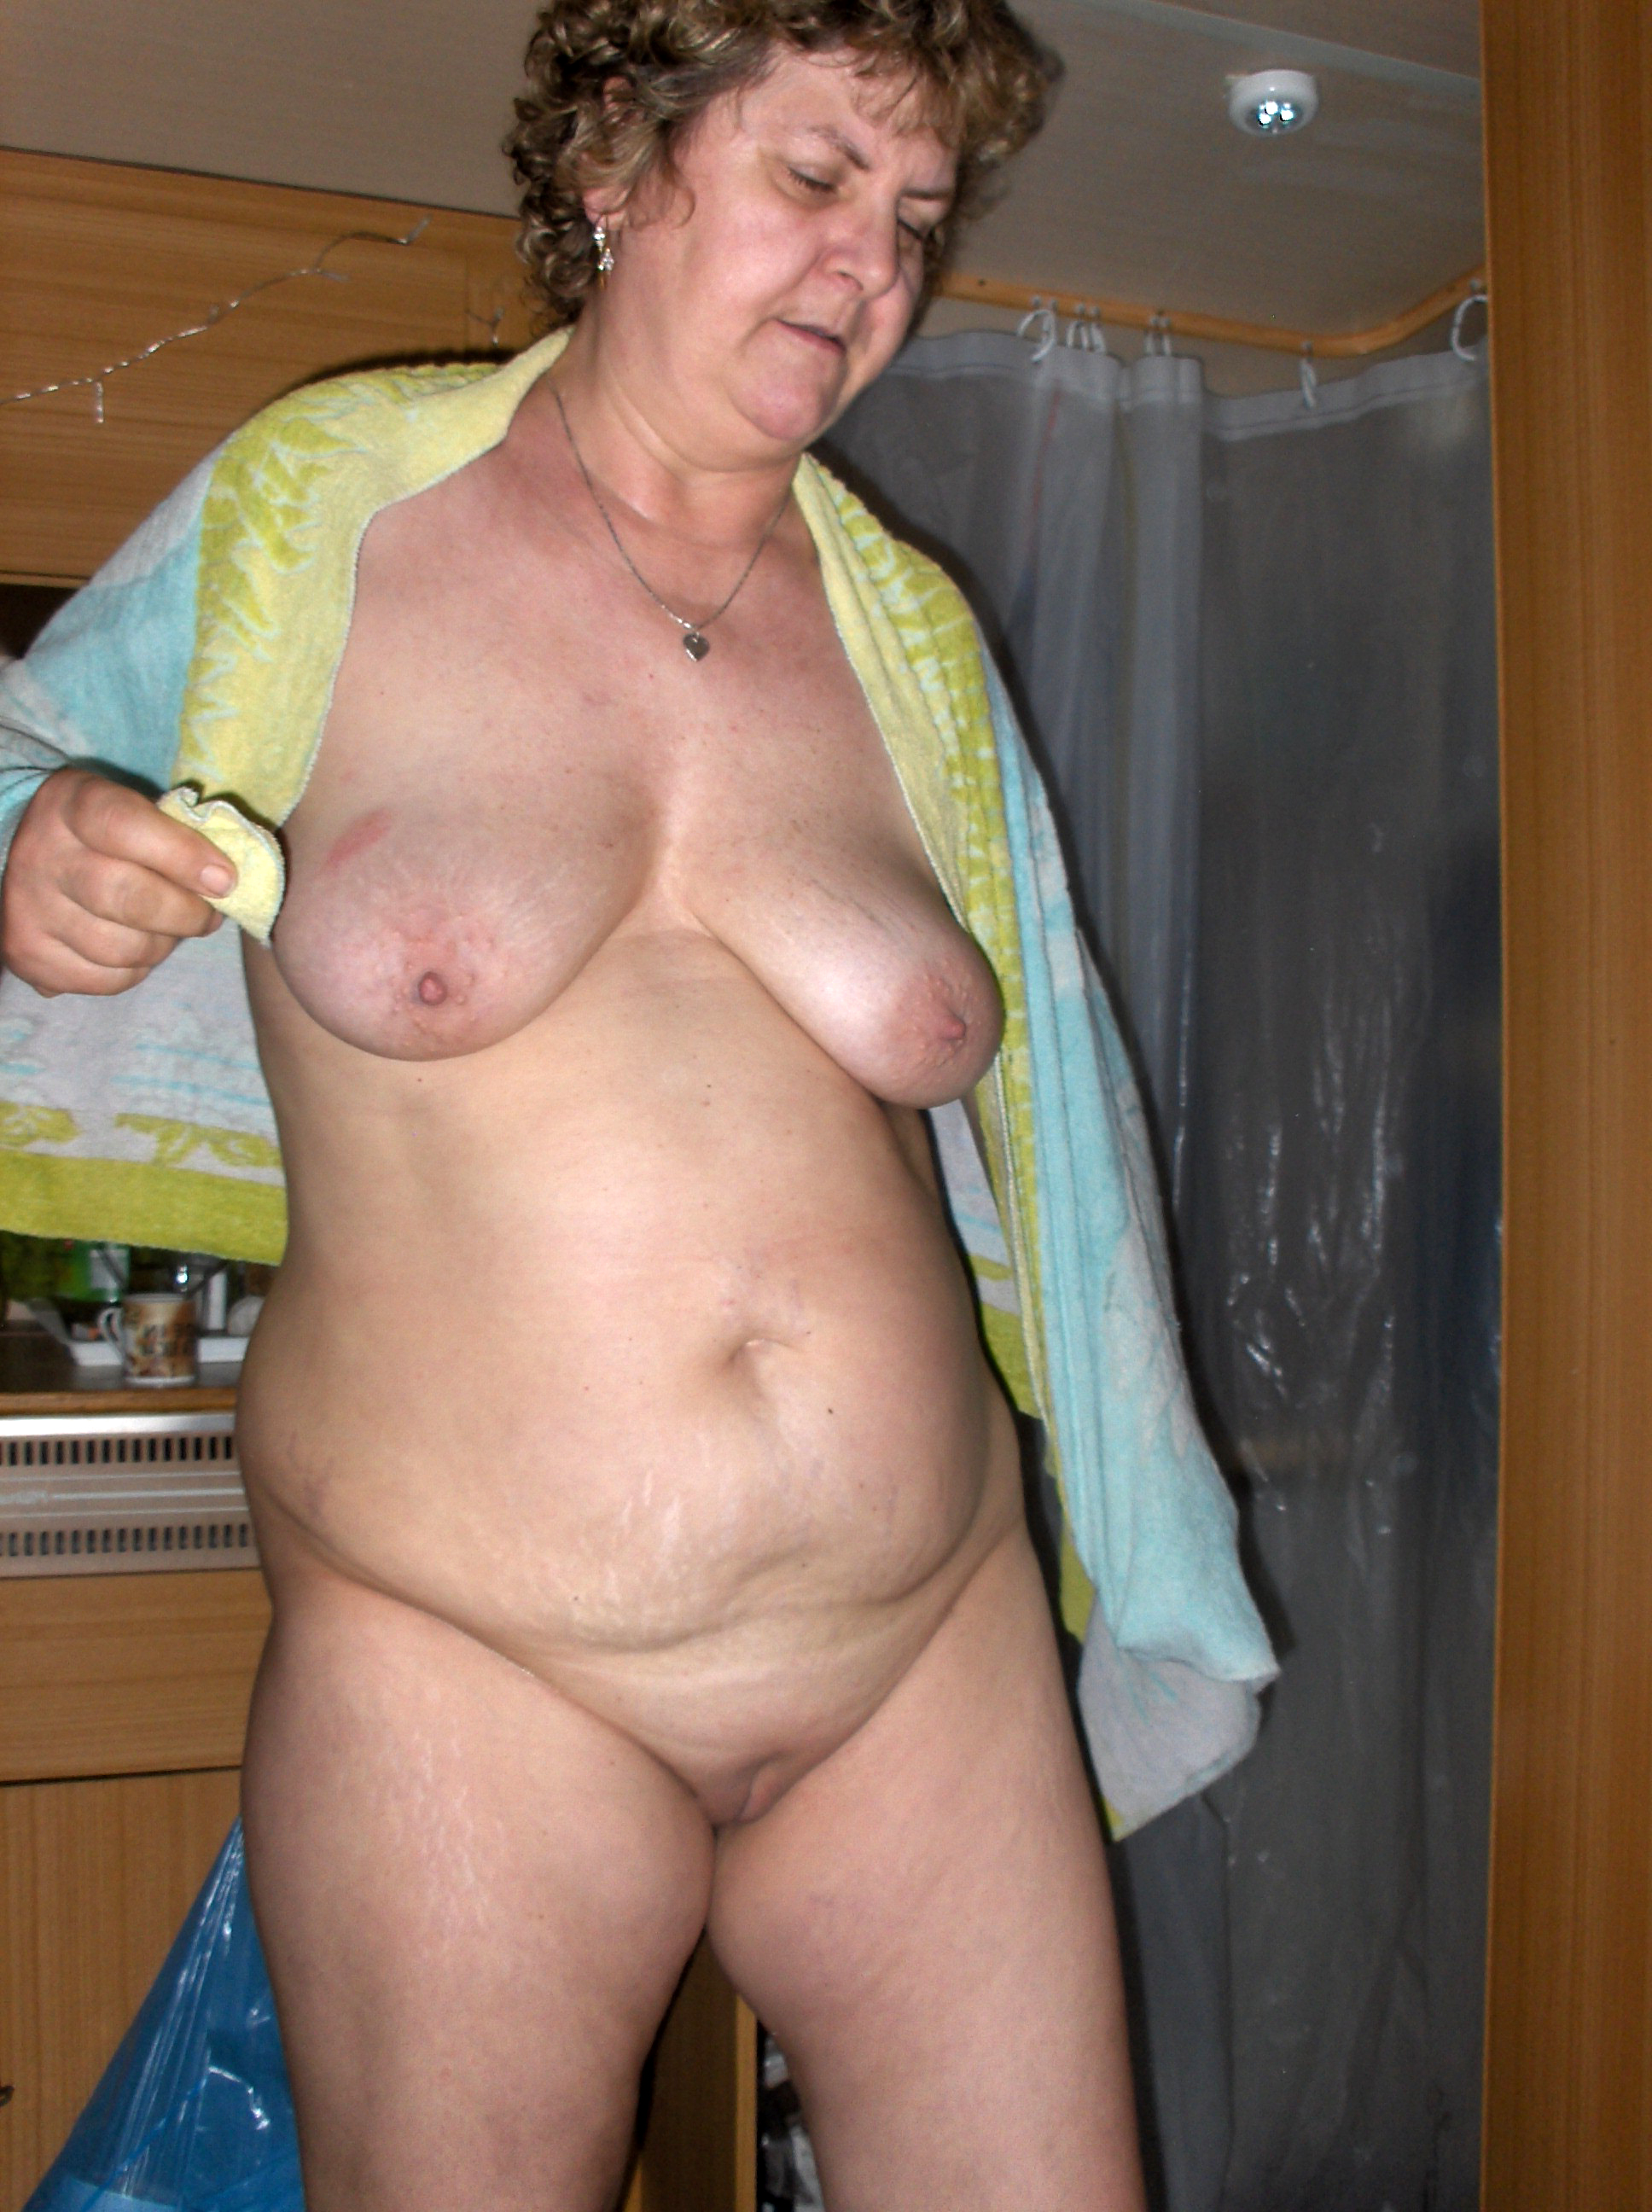 Pictures of girls sunbathing naked